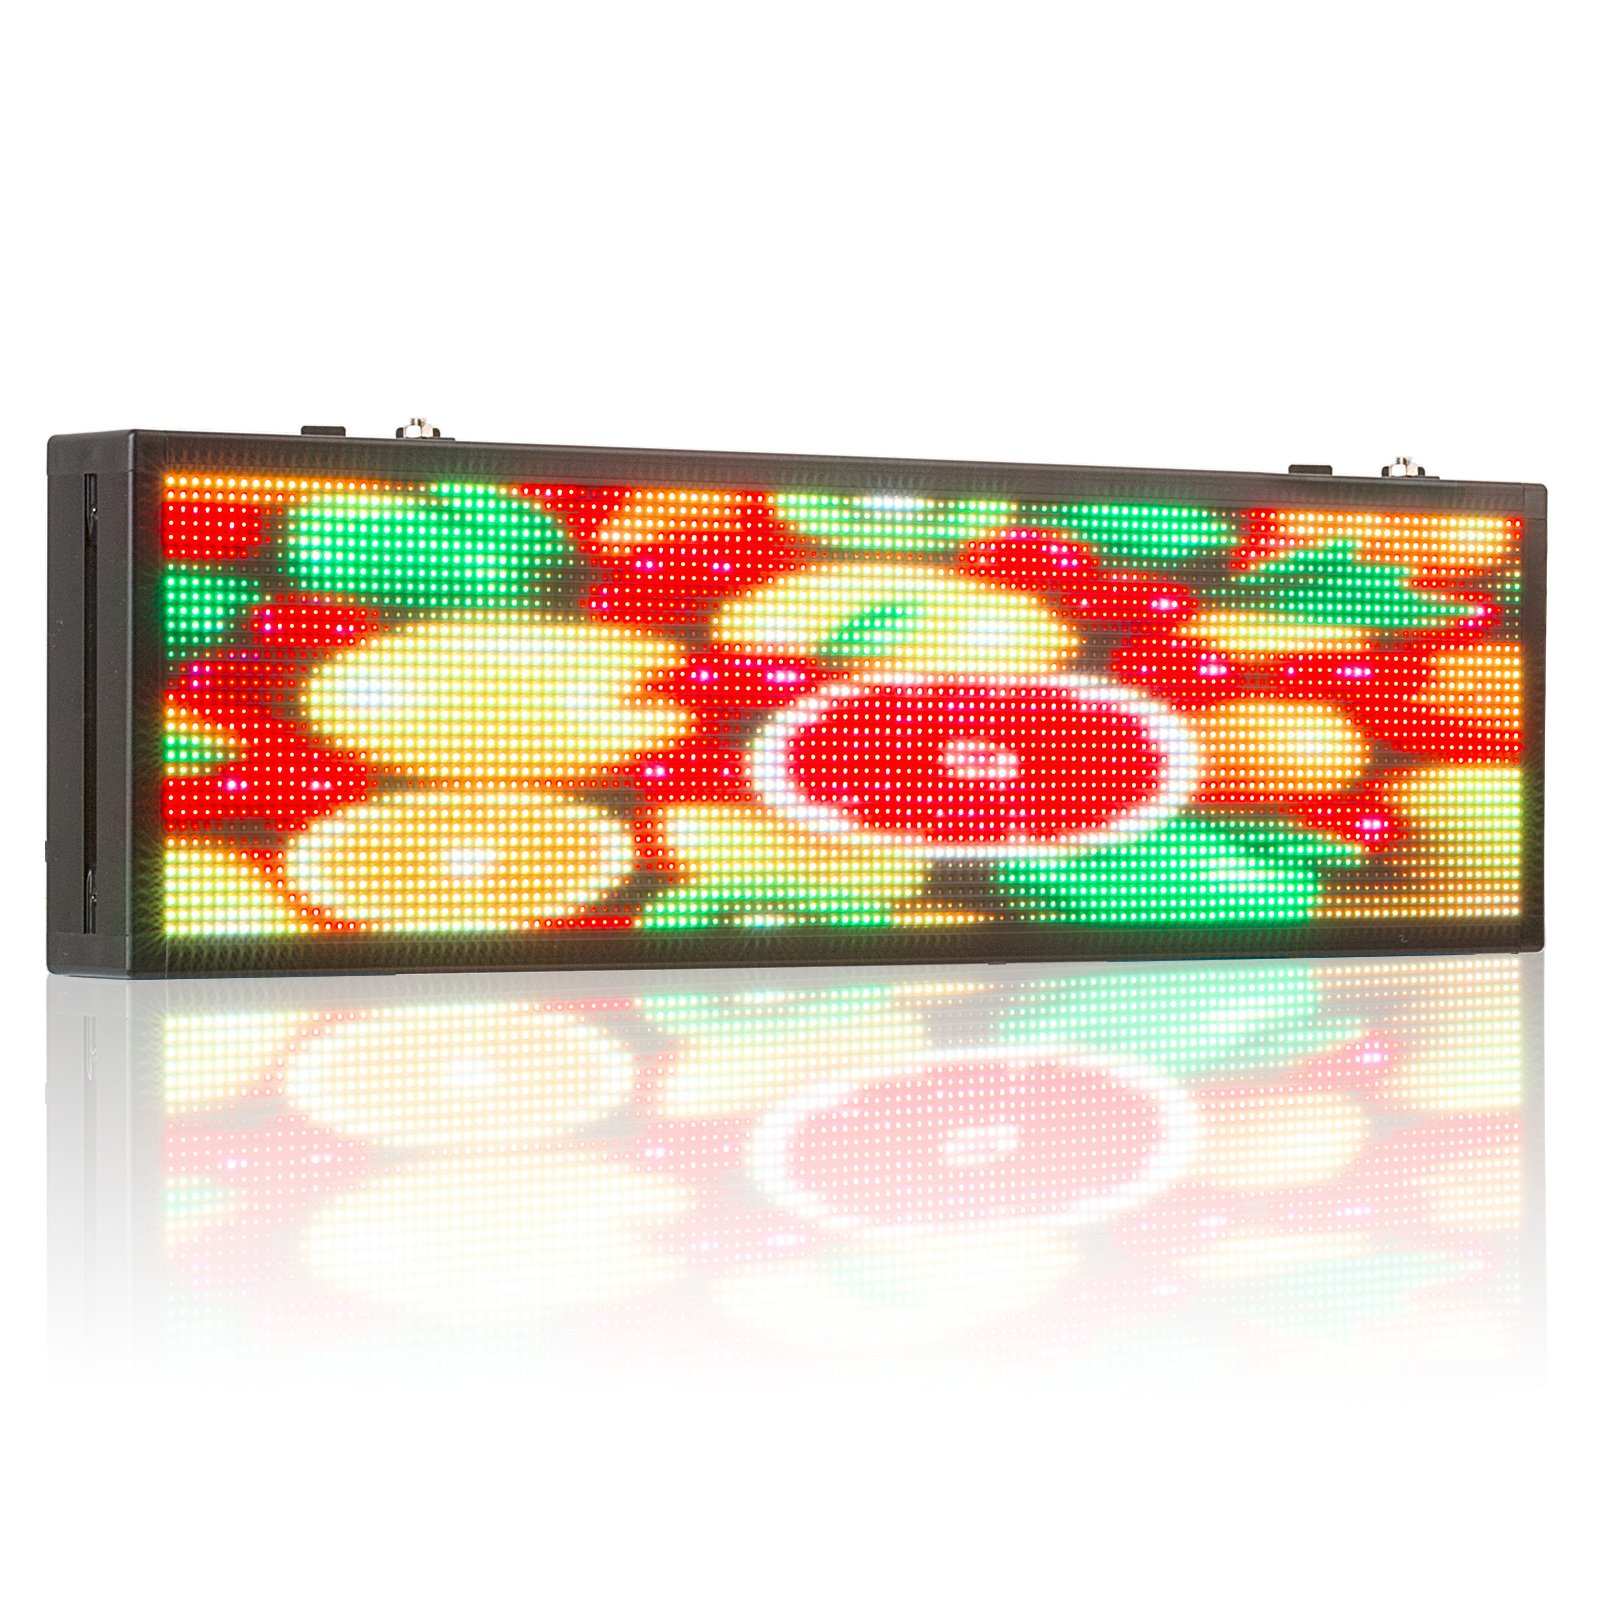 Leadleds 26 Inches P5 SMD RGB Full Color Advertising LED Billboard, Scrolling Text, Video, Images by PC Software and USB Programmable Indoor LED Sign Message Board